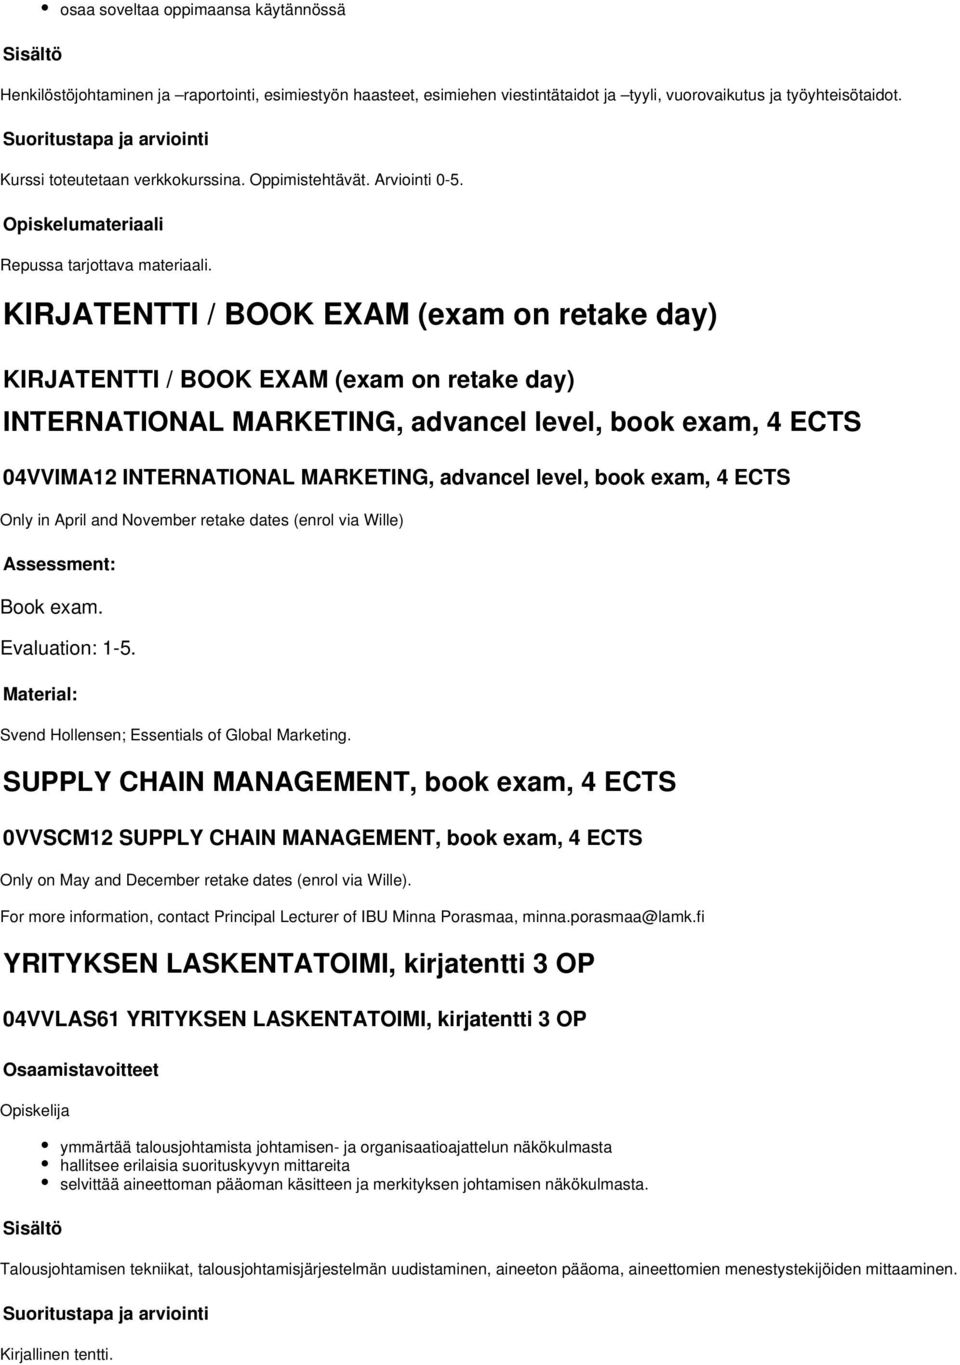 KIRJATENTTI / BOOK EXAM (exam on retake day) KIRJATENTTI / BOOK EXAM (exam on retake day) INTERNATIONAL MARKETING, advancel level, book exam, 4 ECTS 04VVIMA12 INTERNATIONAL MARKETING, advancel level,